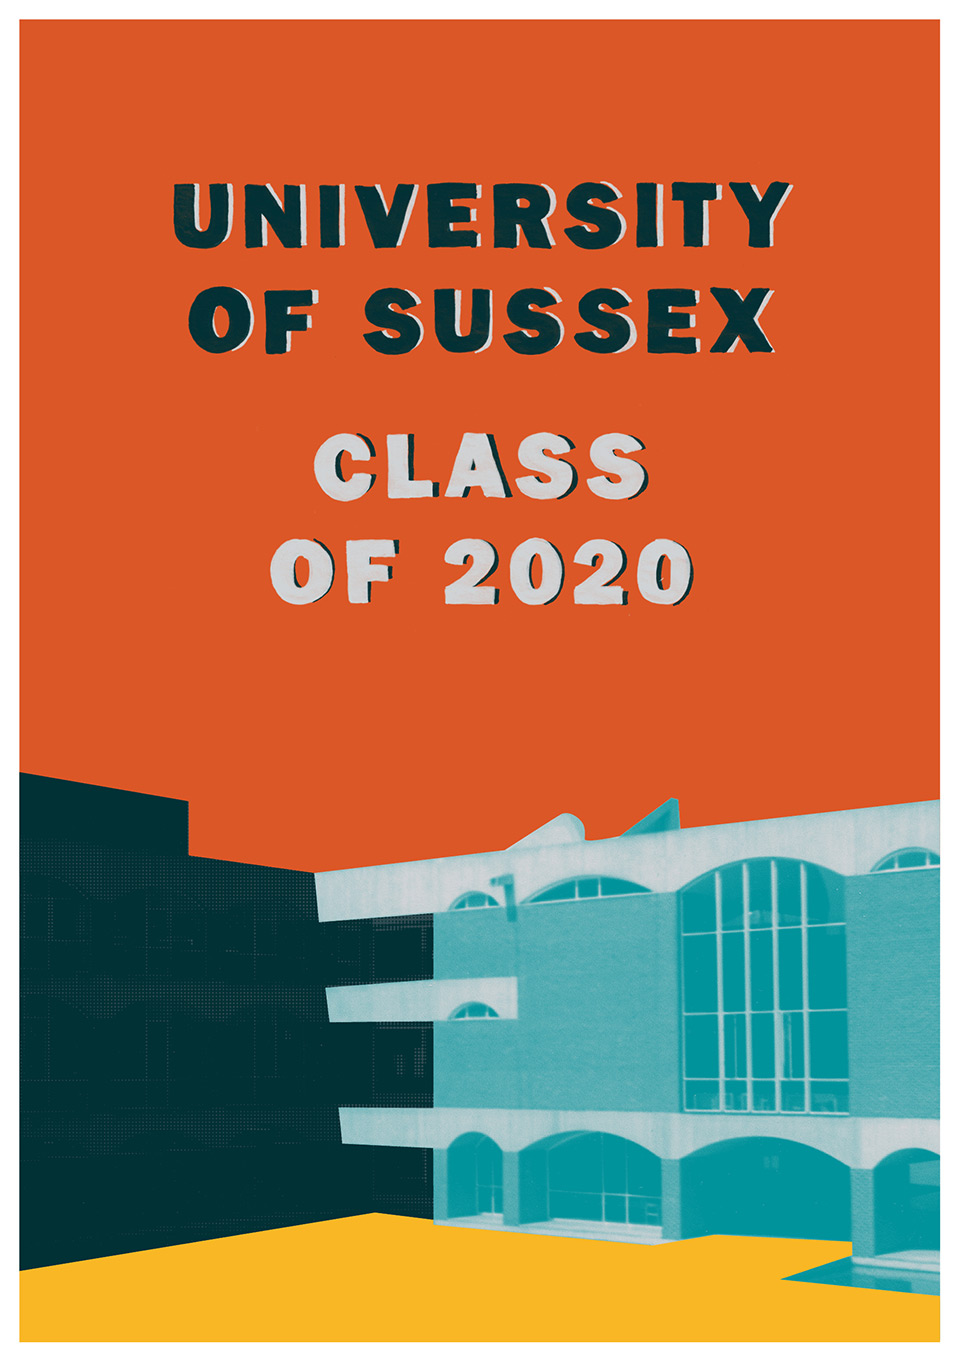 The University of Sussex - Graduation Memento, designed by Irish Butcher